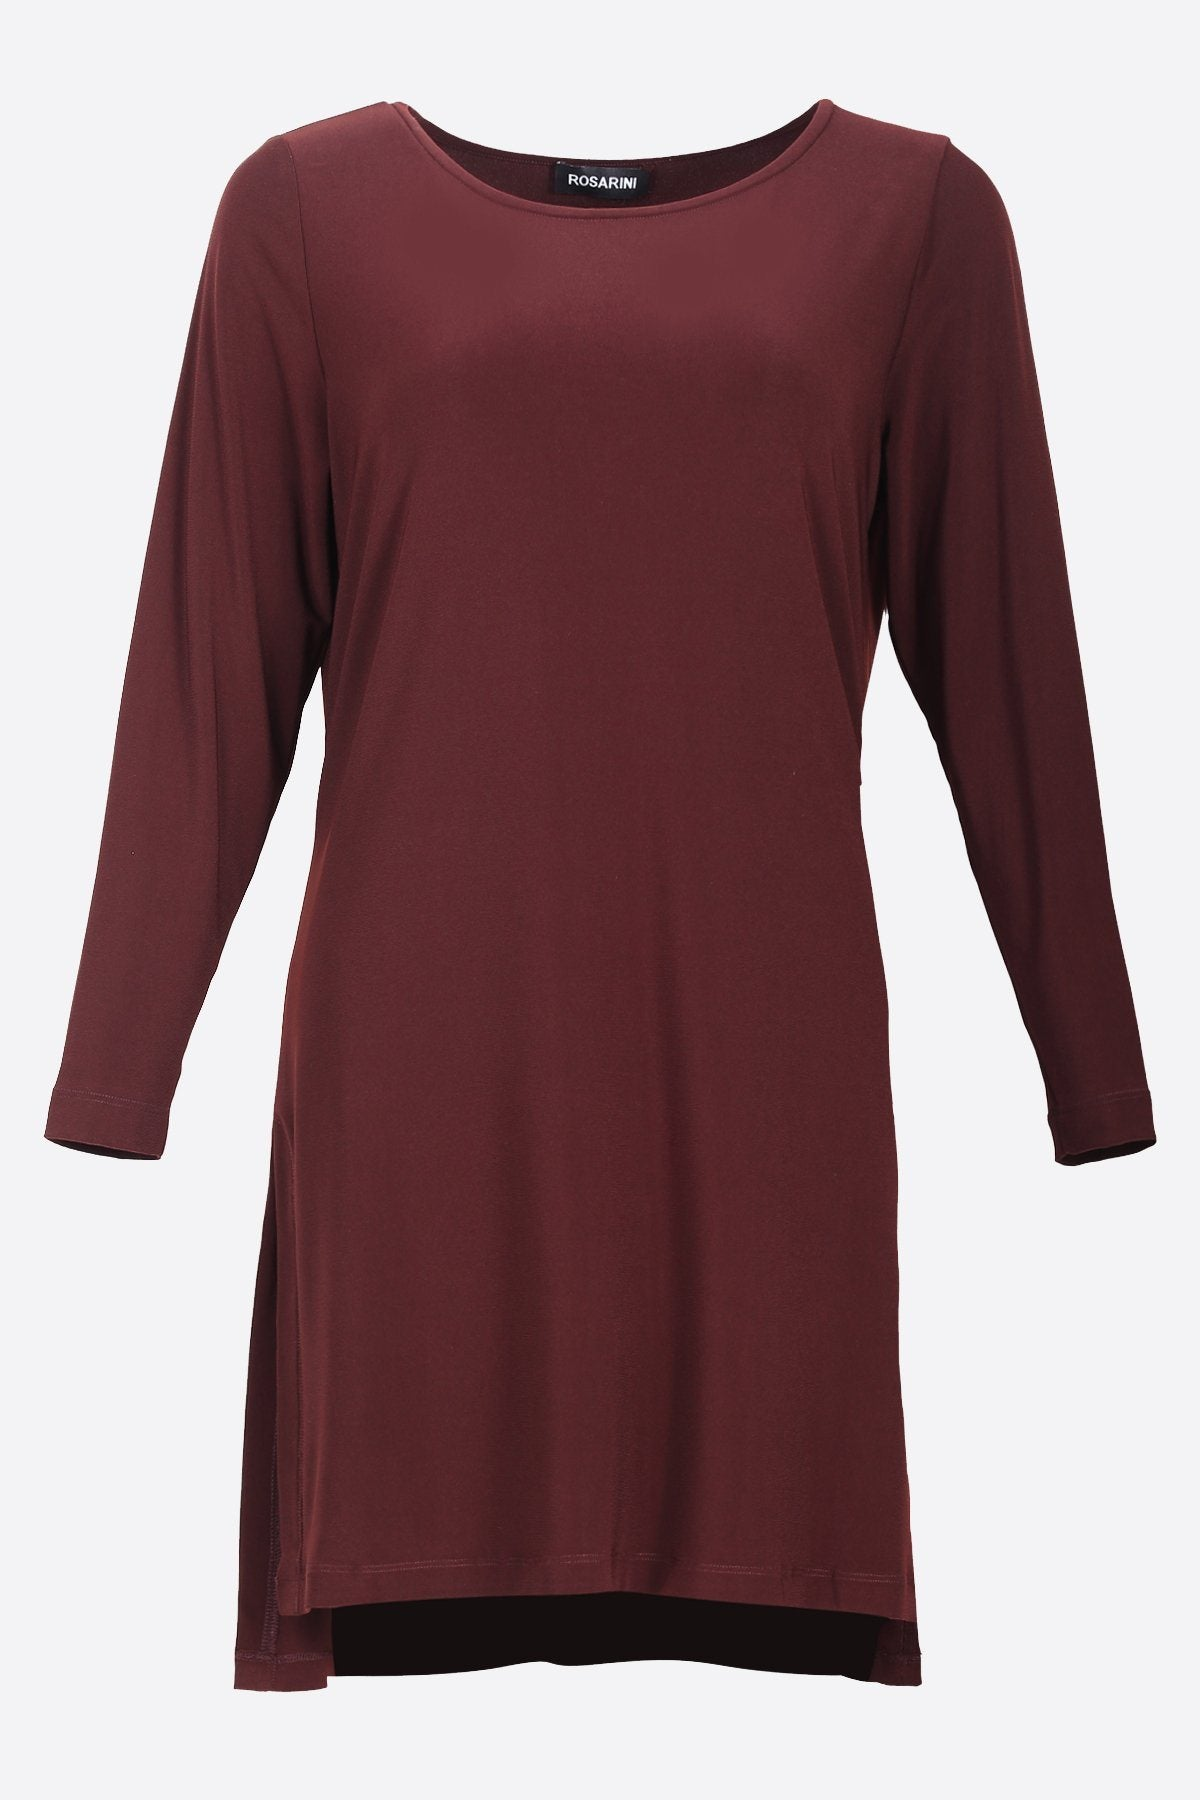 HI LOW SIDE SPLIT TUNIC chestnut